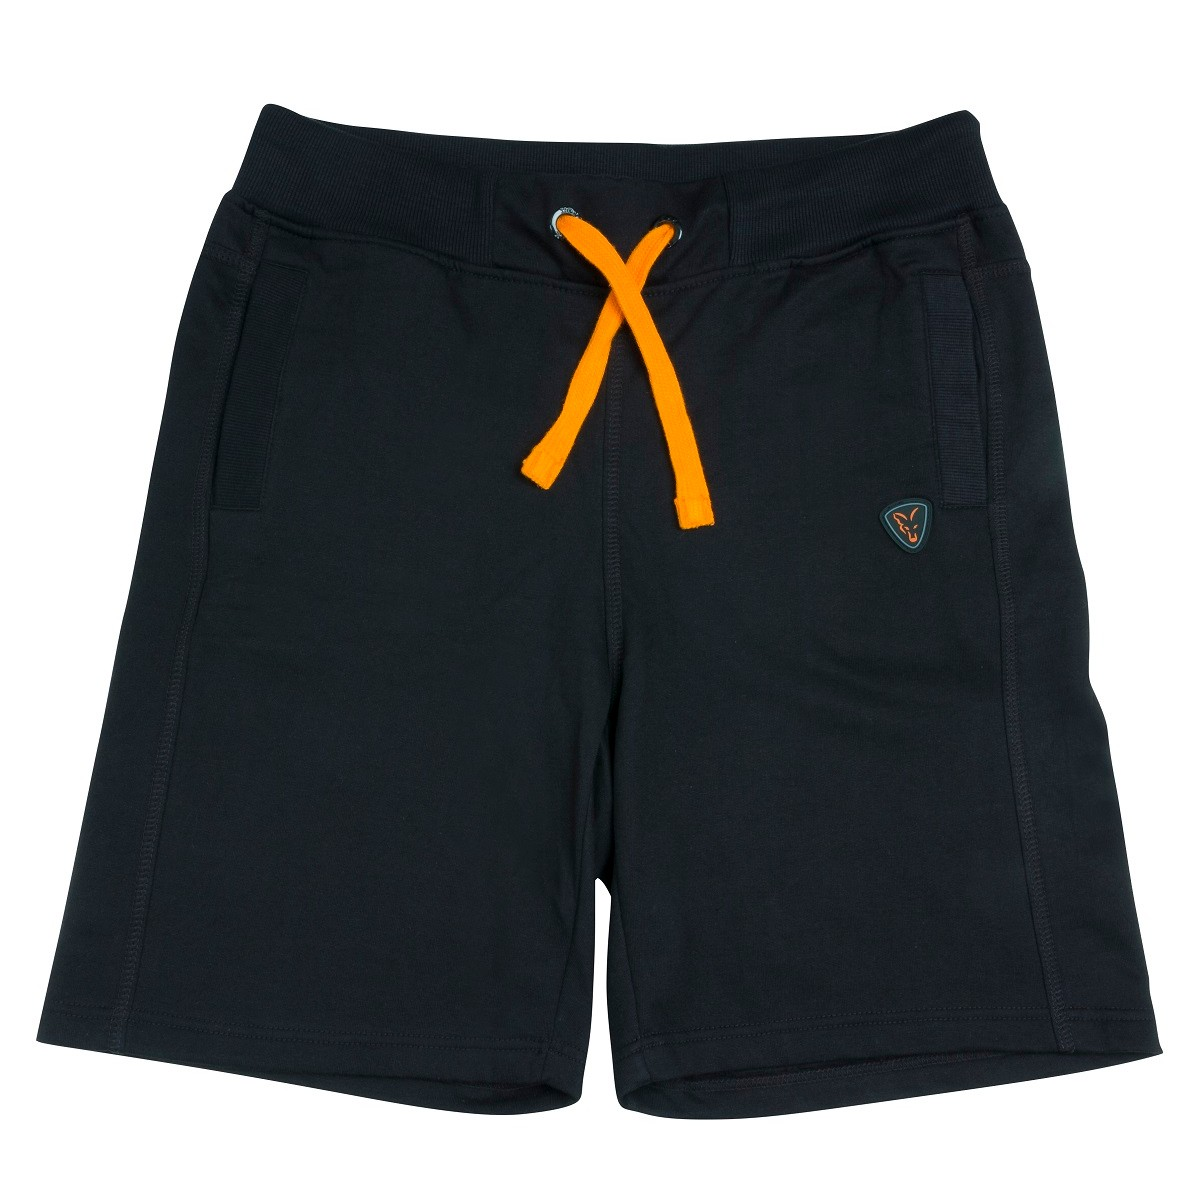 Къси панталони Fox Lightweight Jogger Shorts Black/Orange